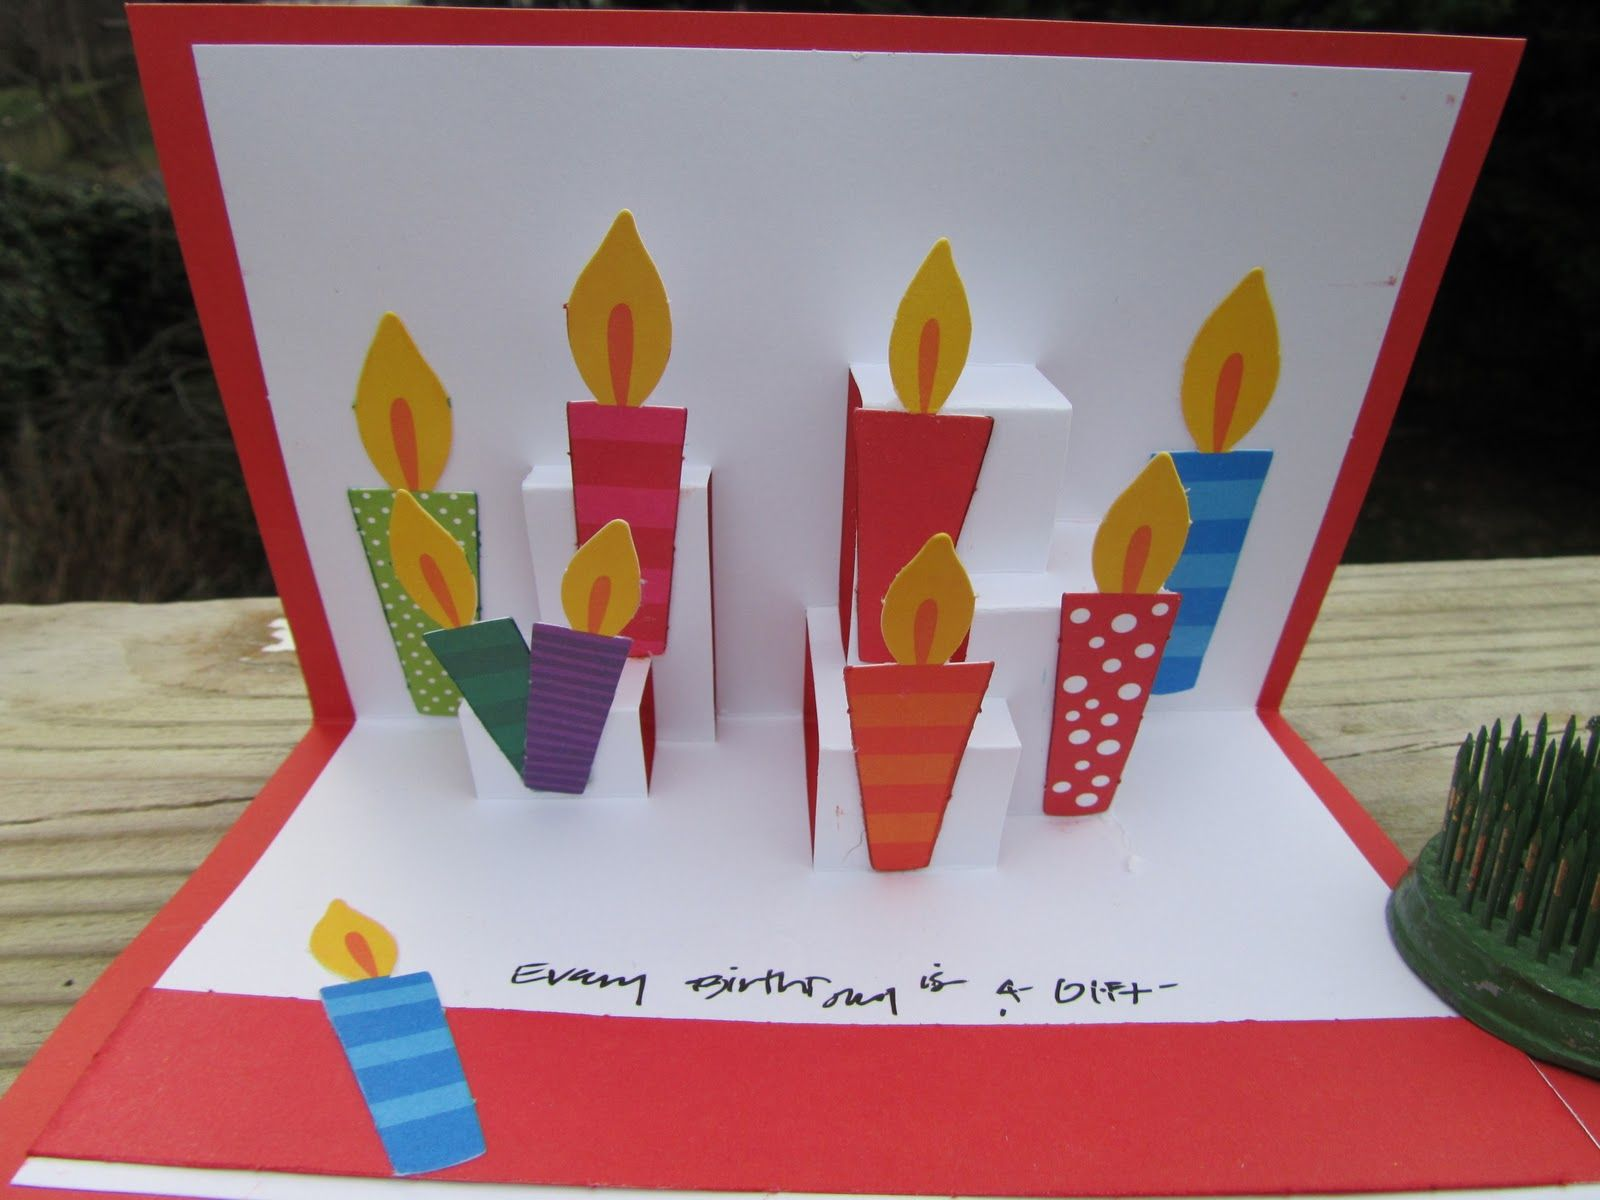 Making Birthday Card Ideas Part - 49: Greeting Cards To Print Lovely Handmade Custom Cards Birthday Cards Ideas  For Make Cards Daughter Bautiful Cute Greeting Cards Wholesale.